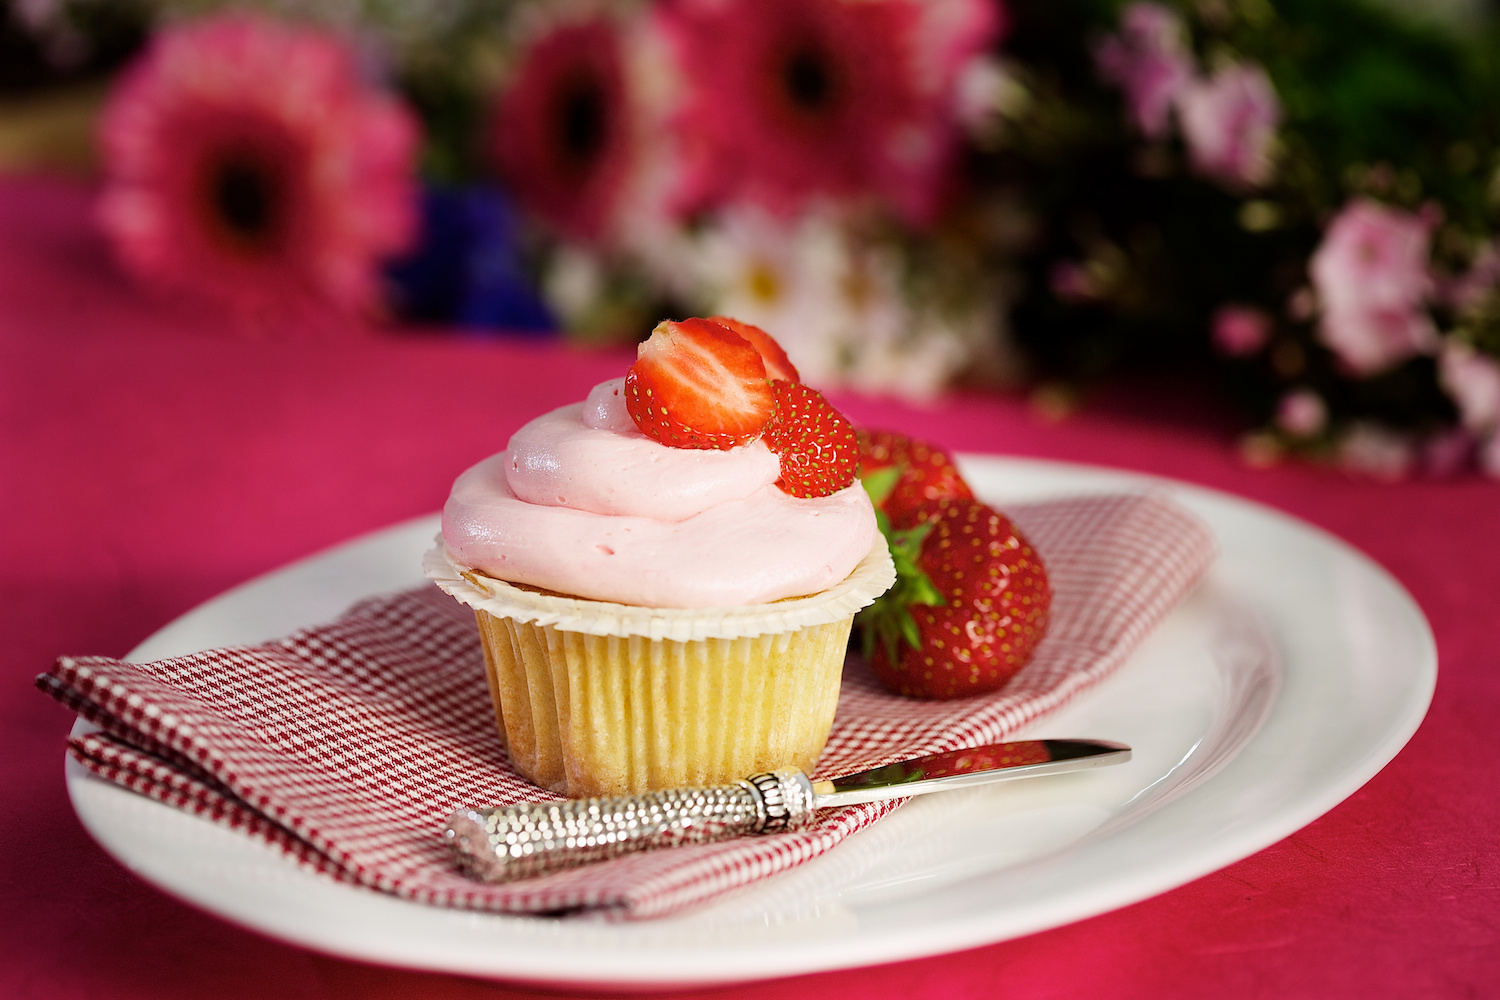 2009-07-03_Balzac_Food_13_strawberry_cupcake_version2_alienskin.jpg